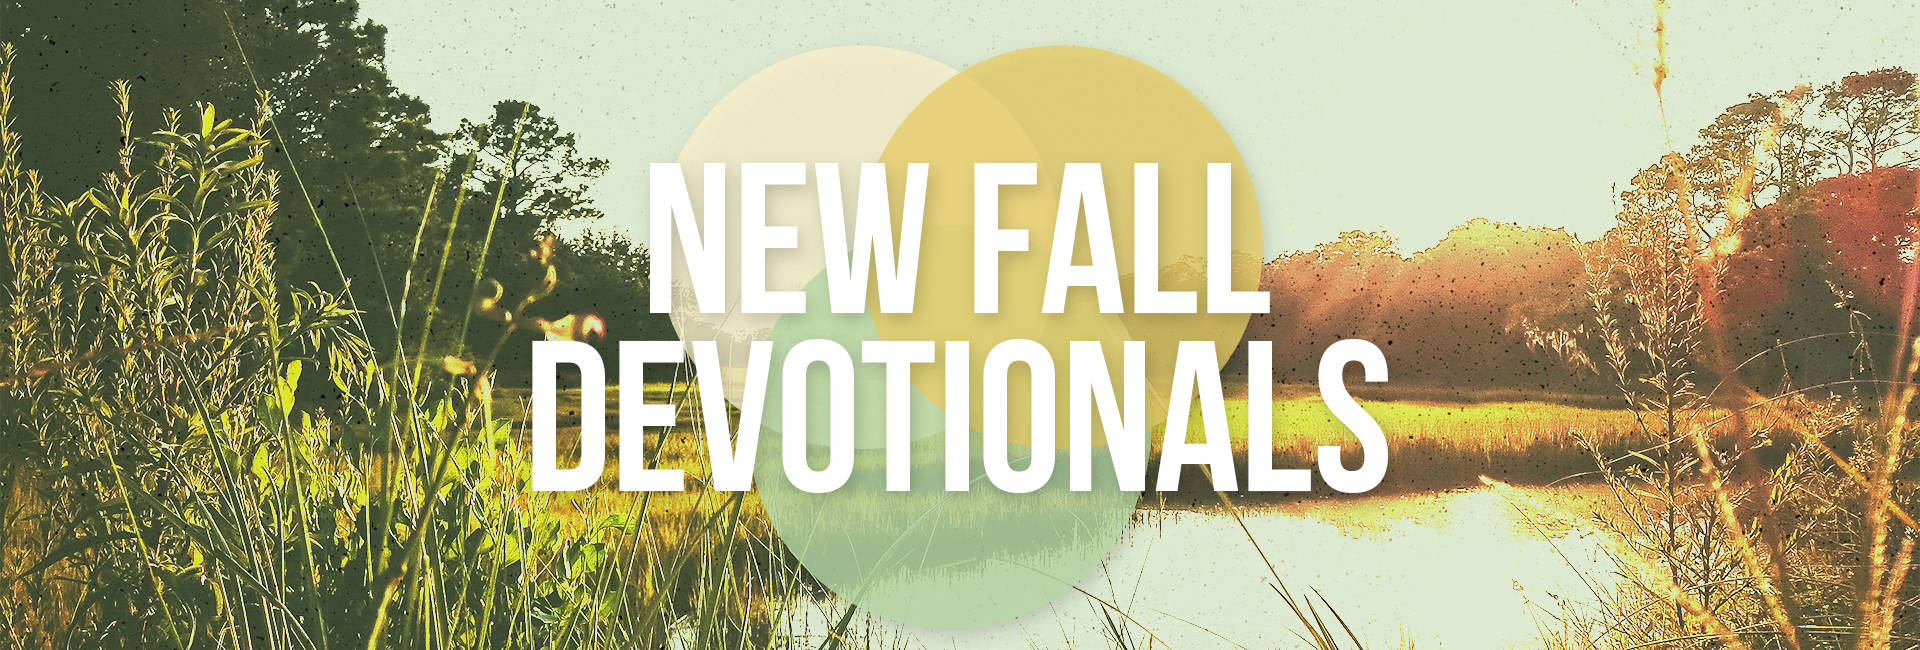 fall devotionals header